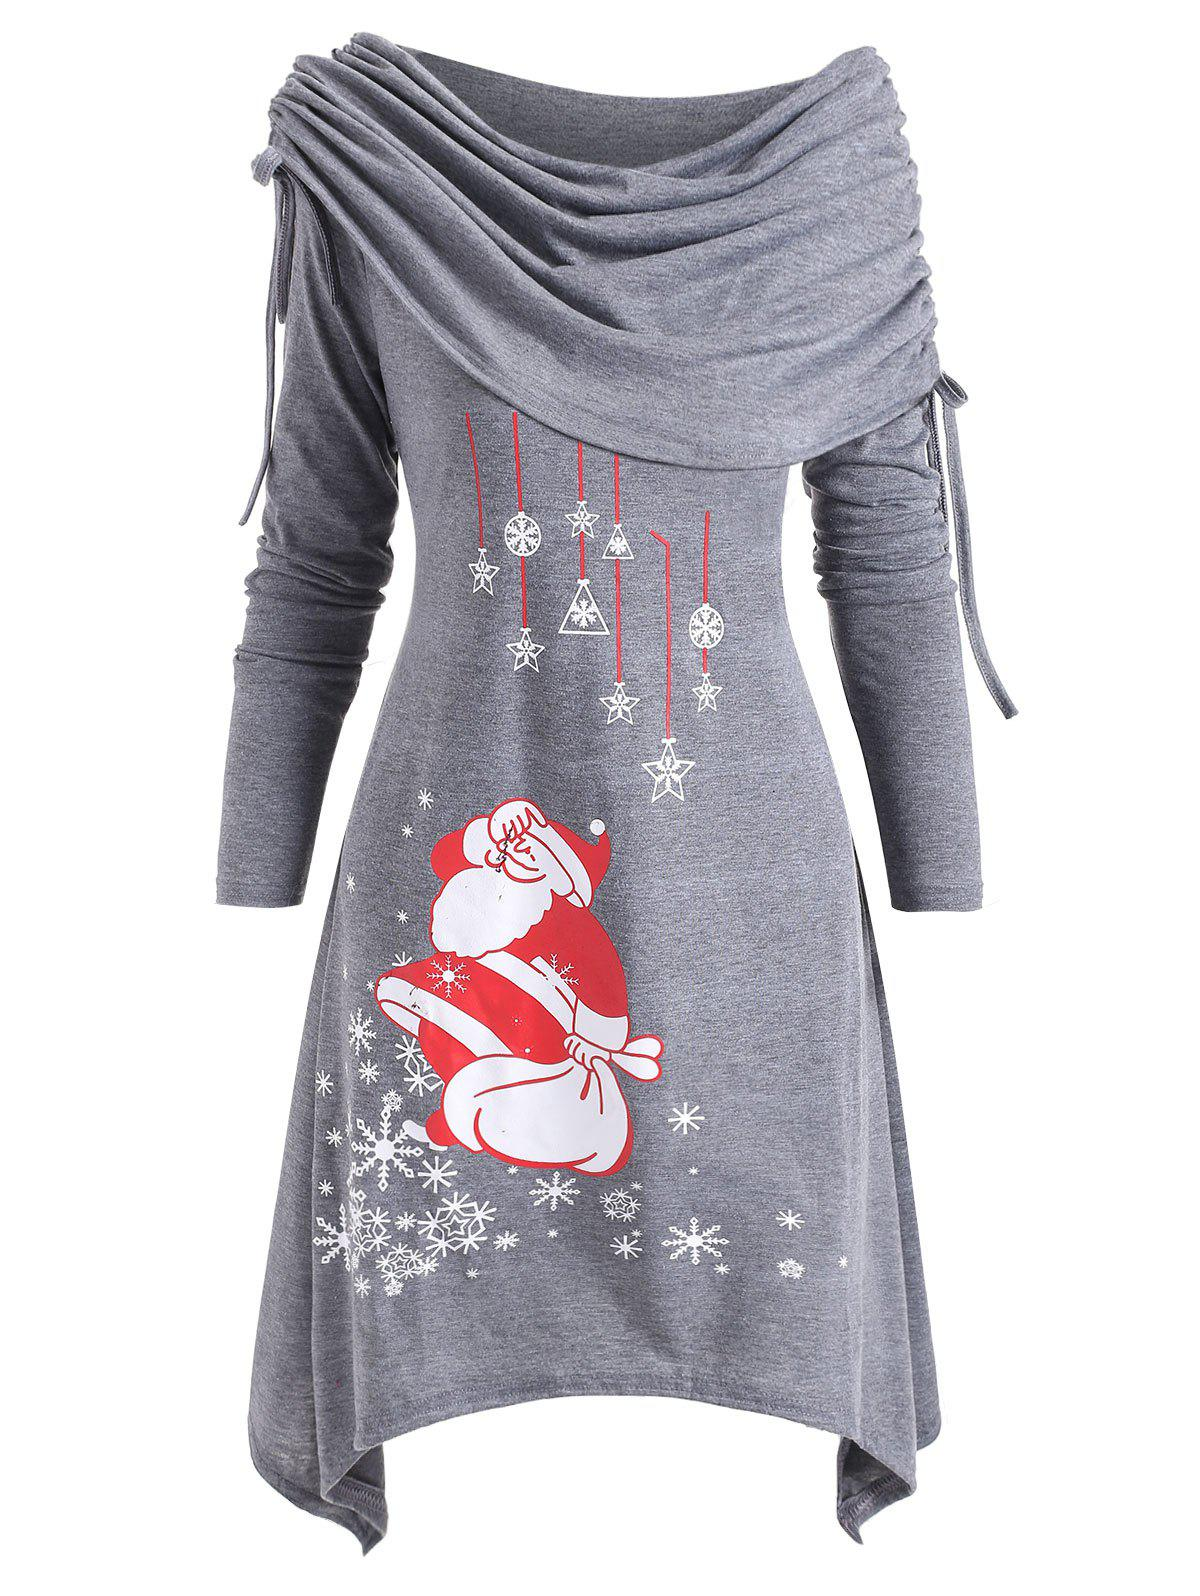 Christmas Santa Claus Foldover Off Shoulder Asymmetrical Dress - GRAY L